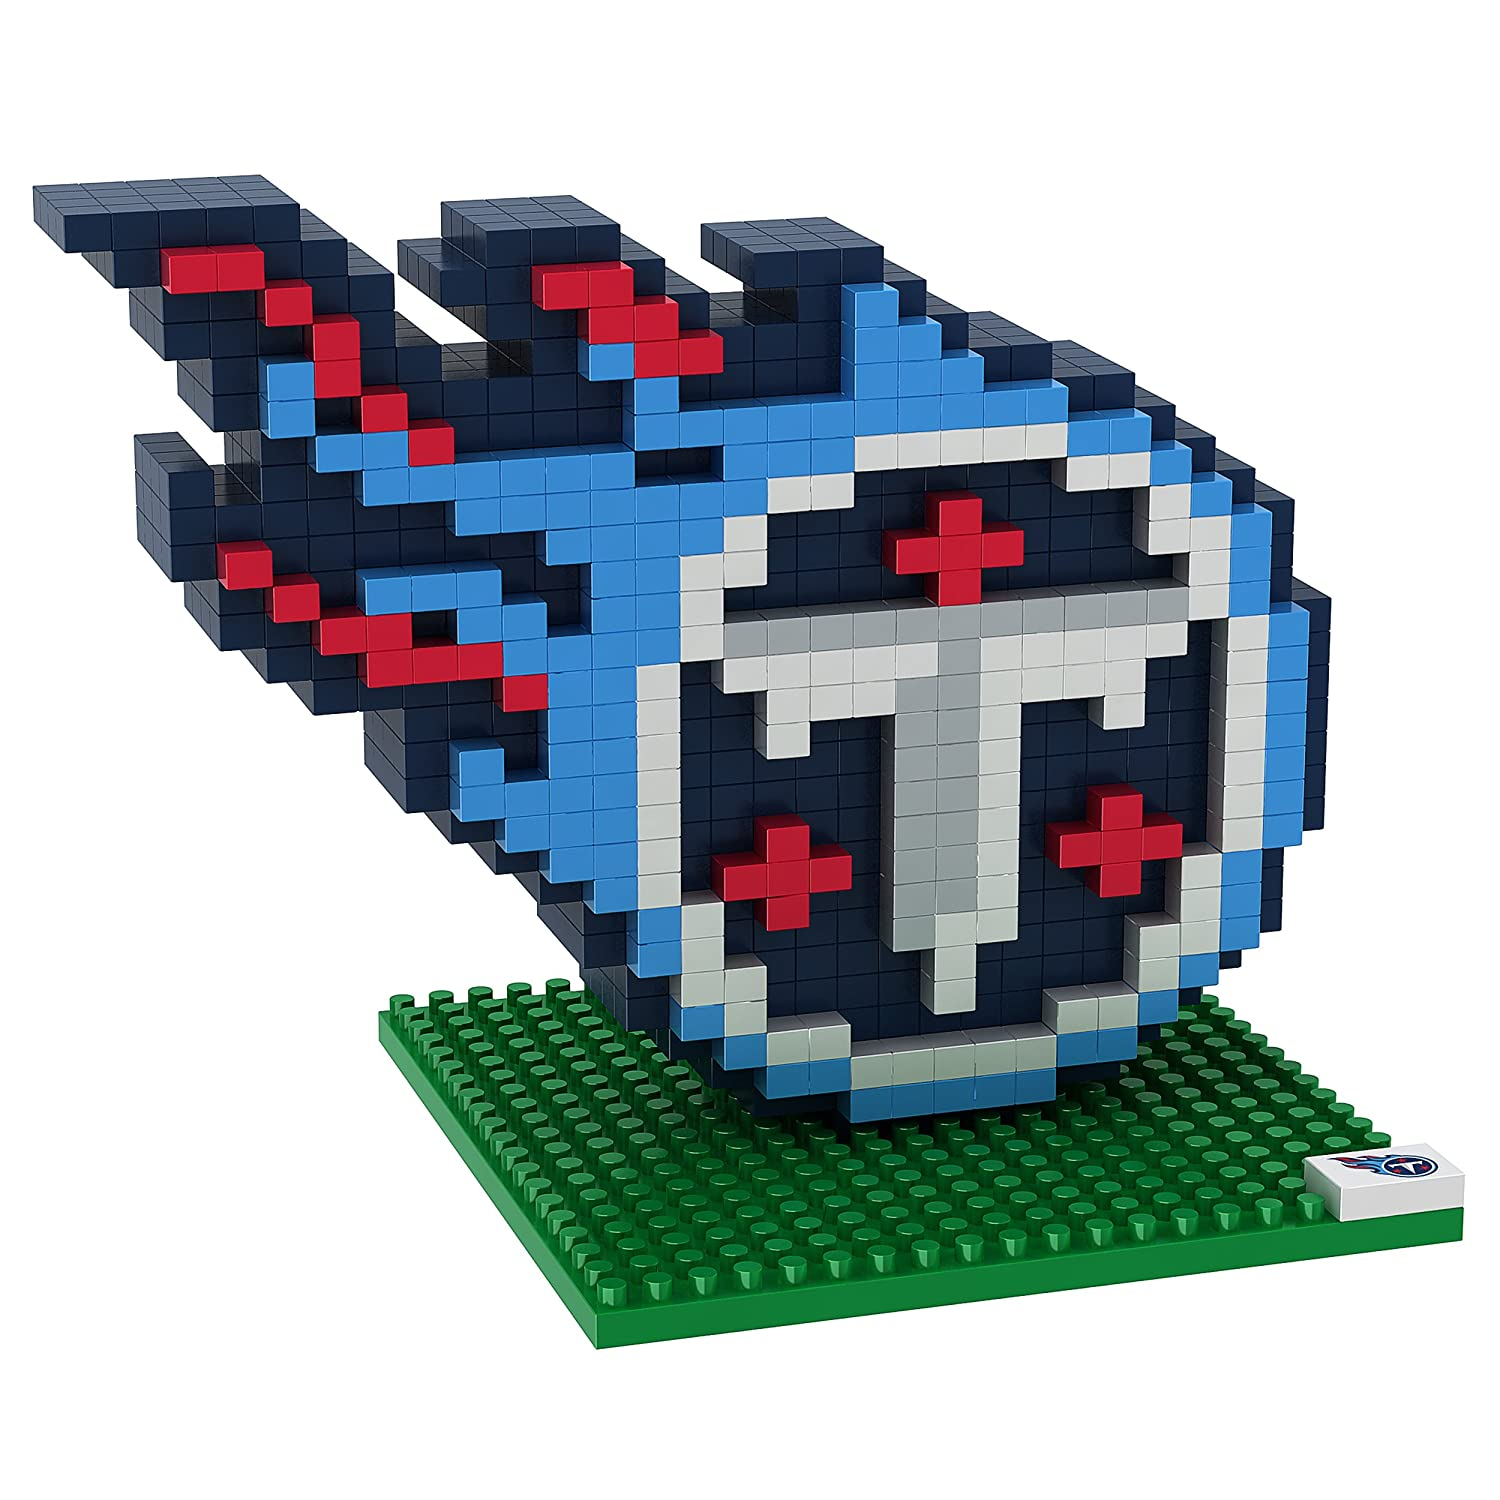 62bf111bc74 FOCO Tenessee Titans Logo 3D BRXLZ Building Kit (493 Piece) Forever  Collectibles (uk) Ltd